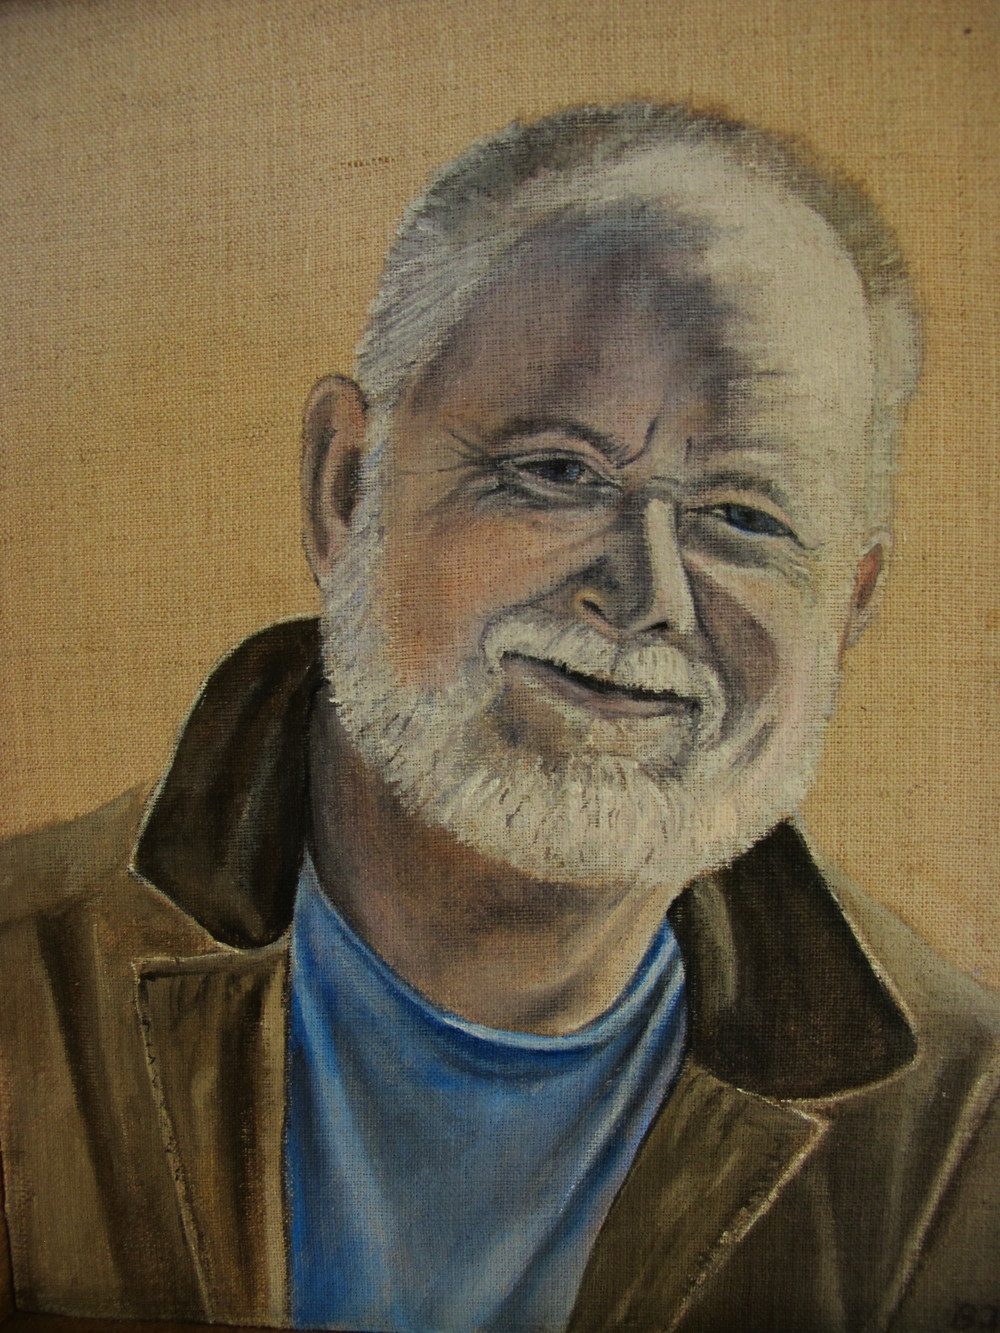 Fred, for Patty , 2012 Oil on linen, 10 x 8 inches